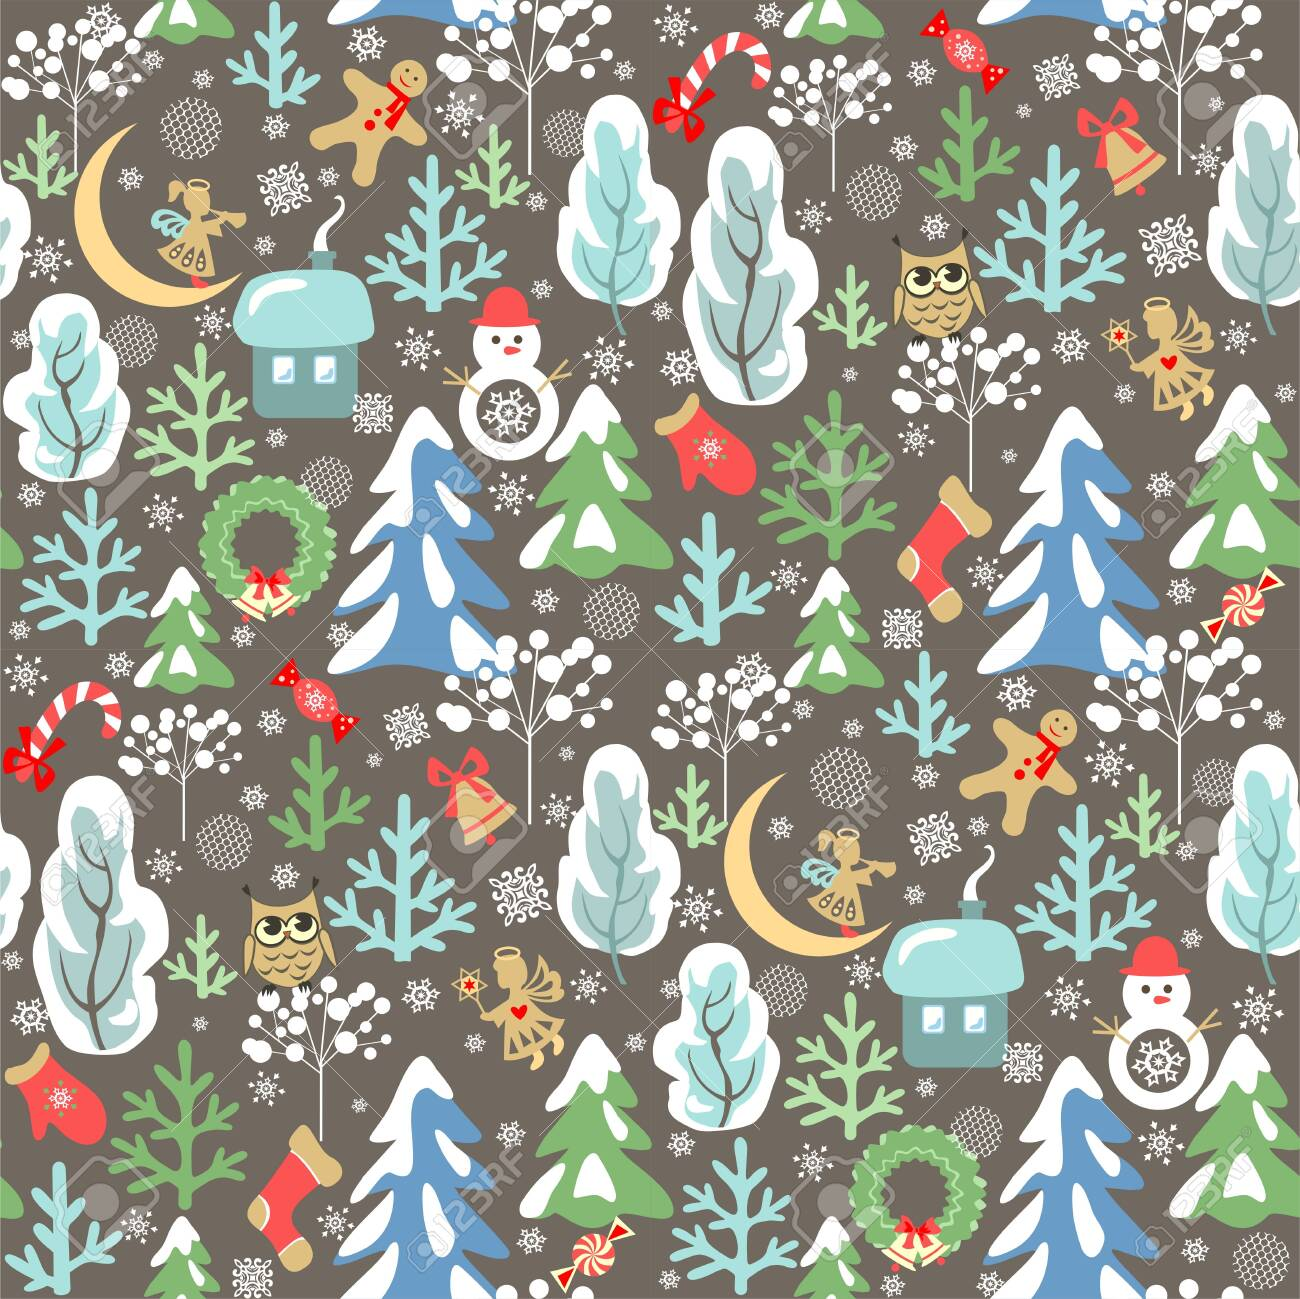 136606778 childish funny christmas wallpaper with seamless pattern with little angels owl and snowman snowy fi